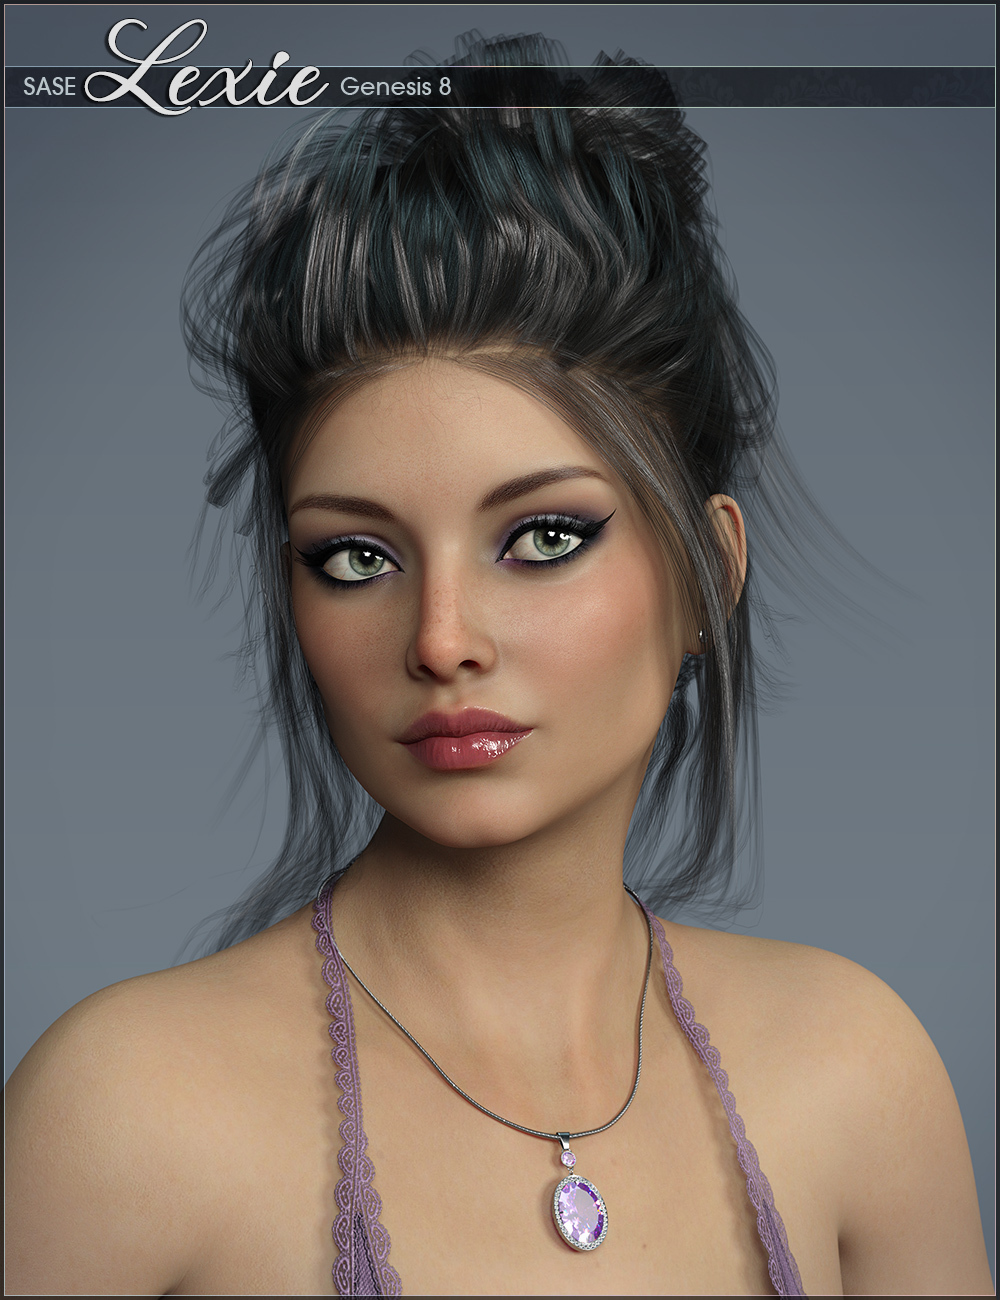 SASE Lexie for Genesis 8